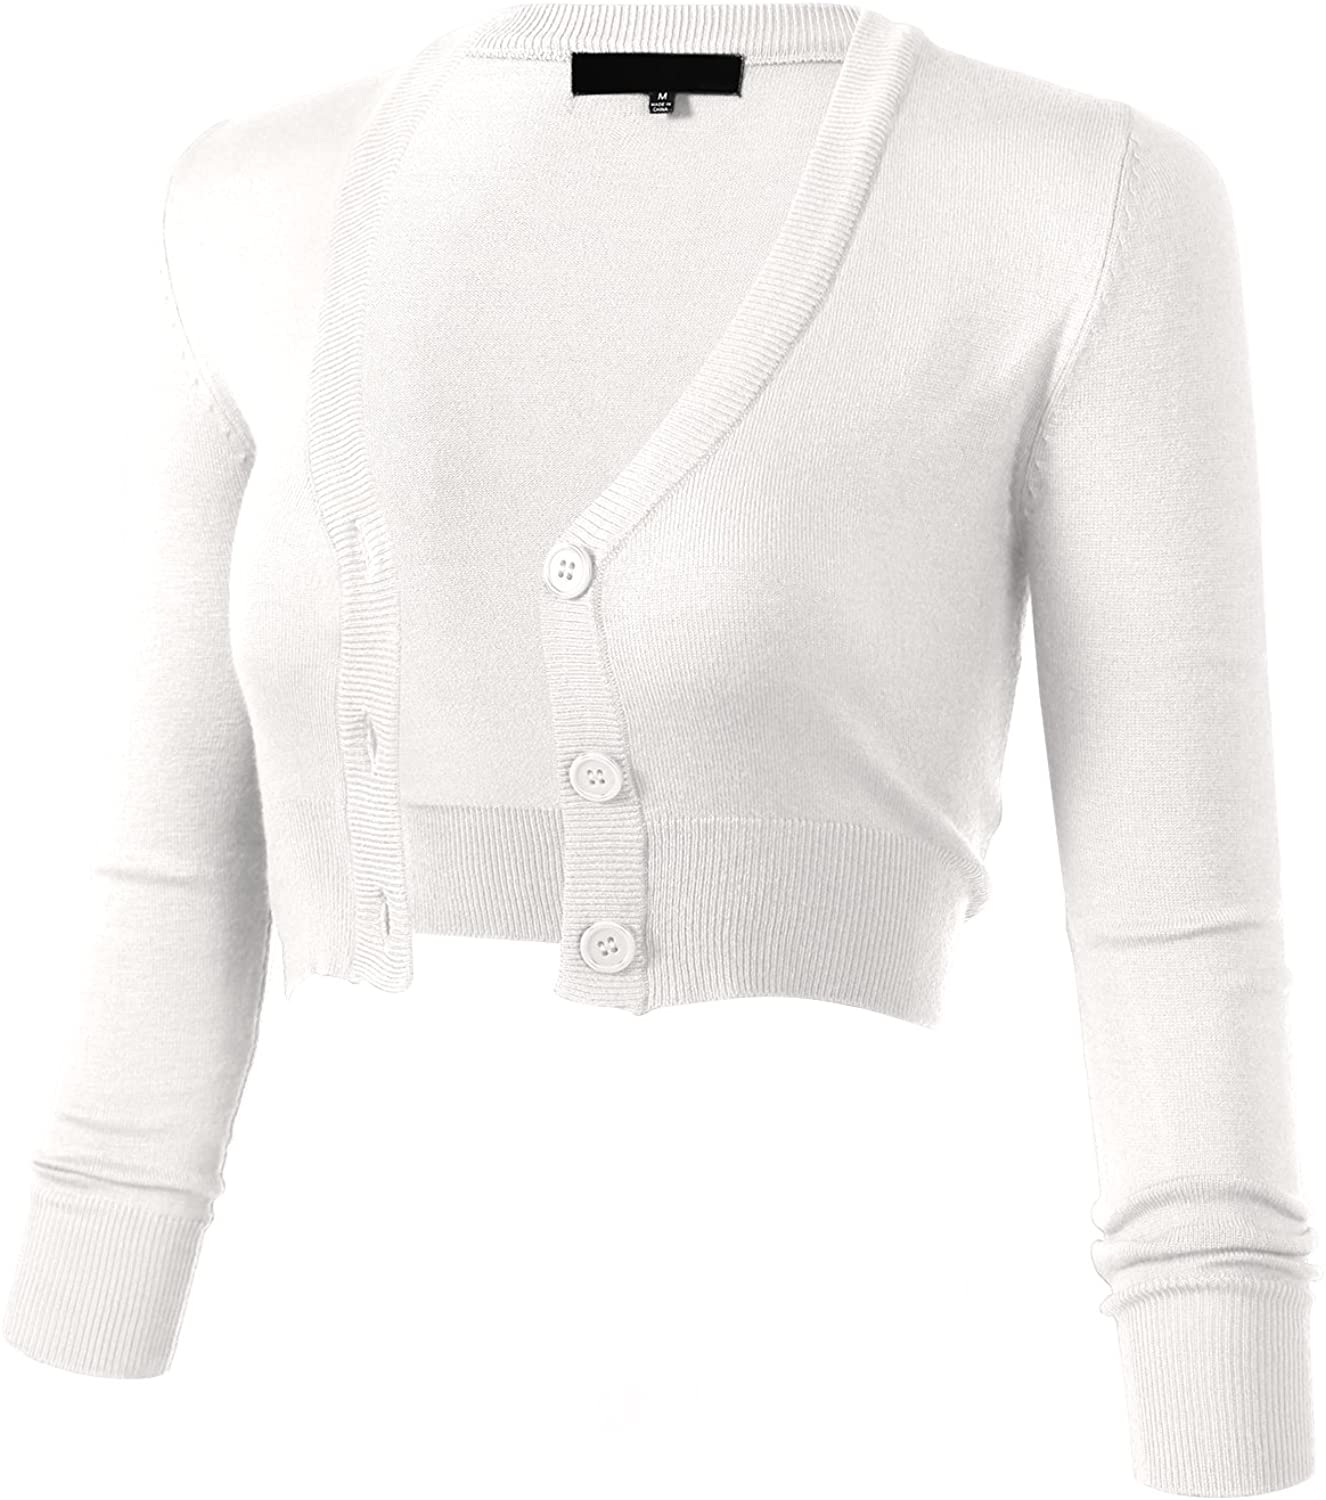 Women's Solid Button Down 3/4 Sleeve Cropped Bolero Cardigans (S-4XL)